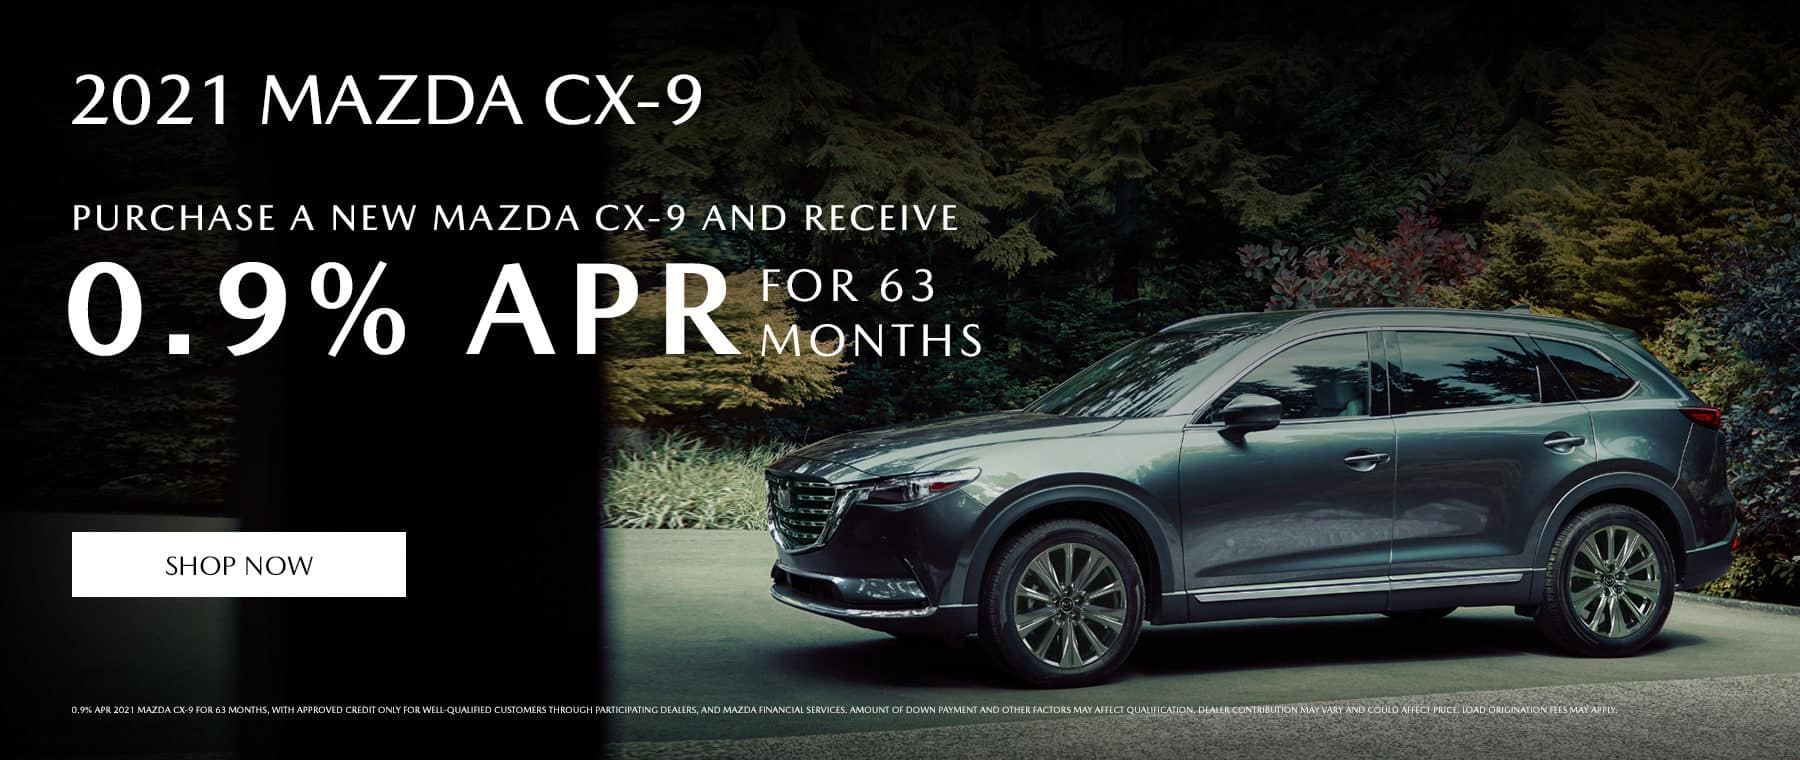 2021 Mazda CX-9 Purchase a new Mazda CX-9 and receive 0.9% APR for 63 months